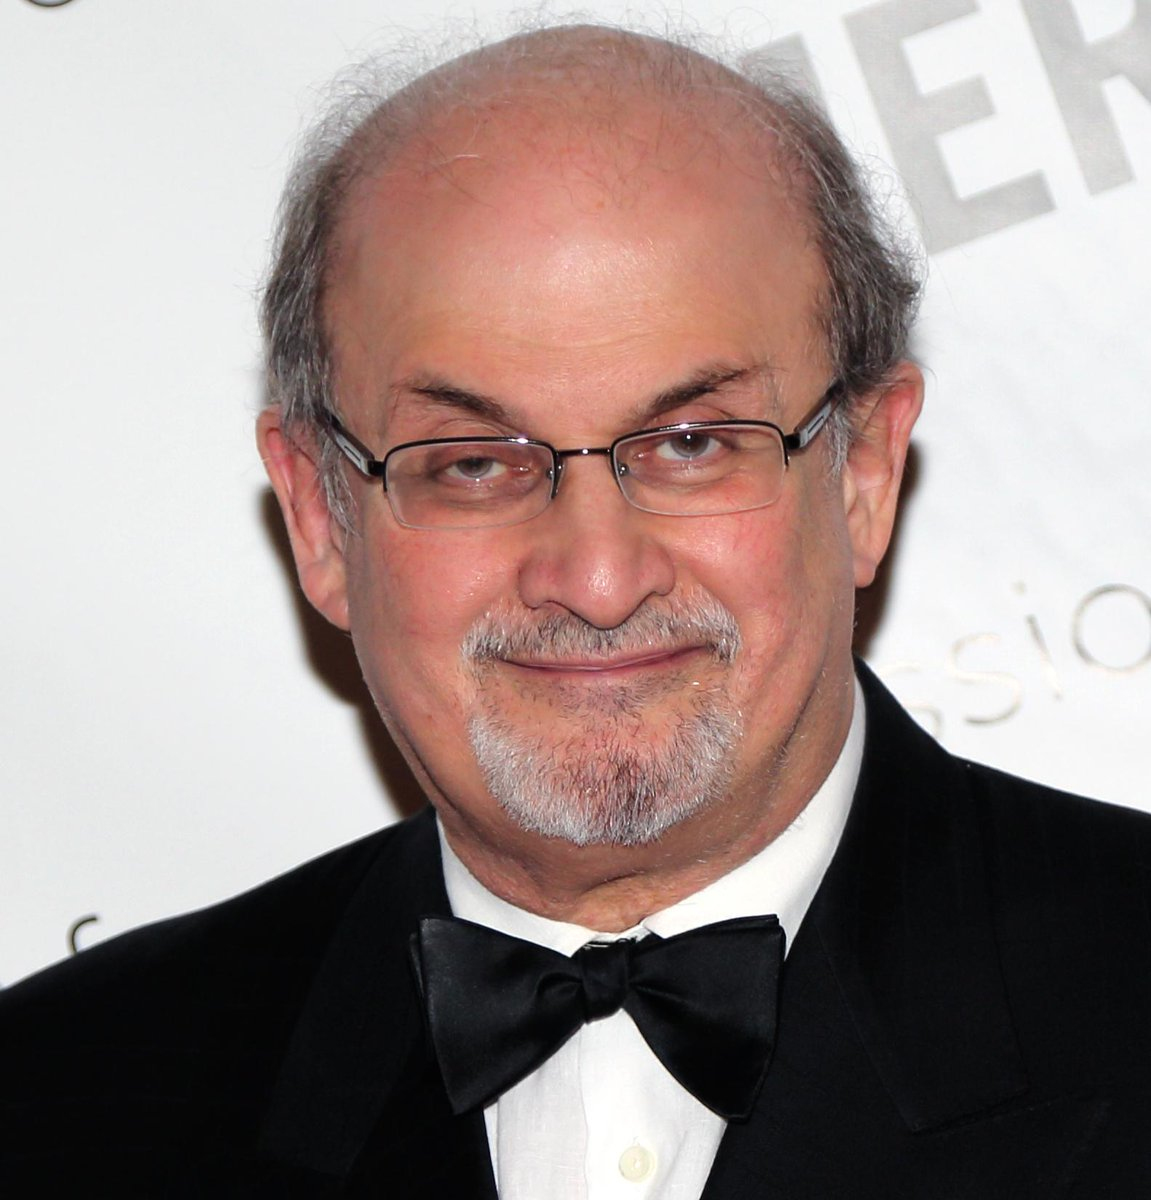 NYU faculty member @SalmanRushdie just published a new book!  http://t.co/NhFMT9BRqL http://t.co/ZREgTMtcEt